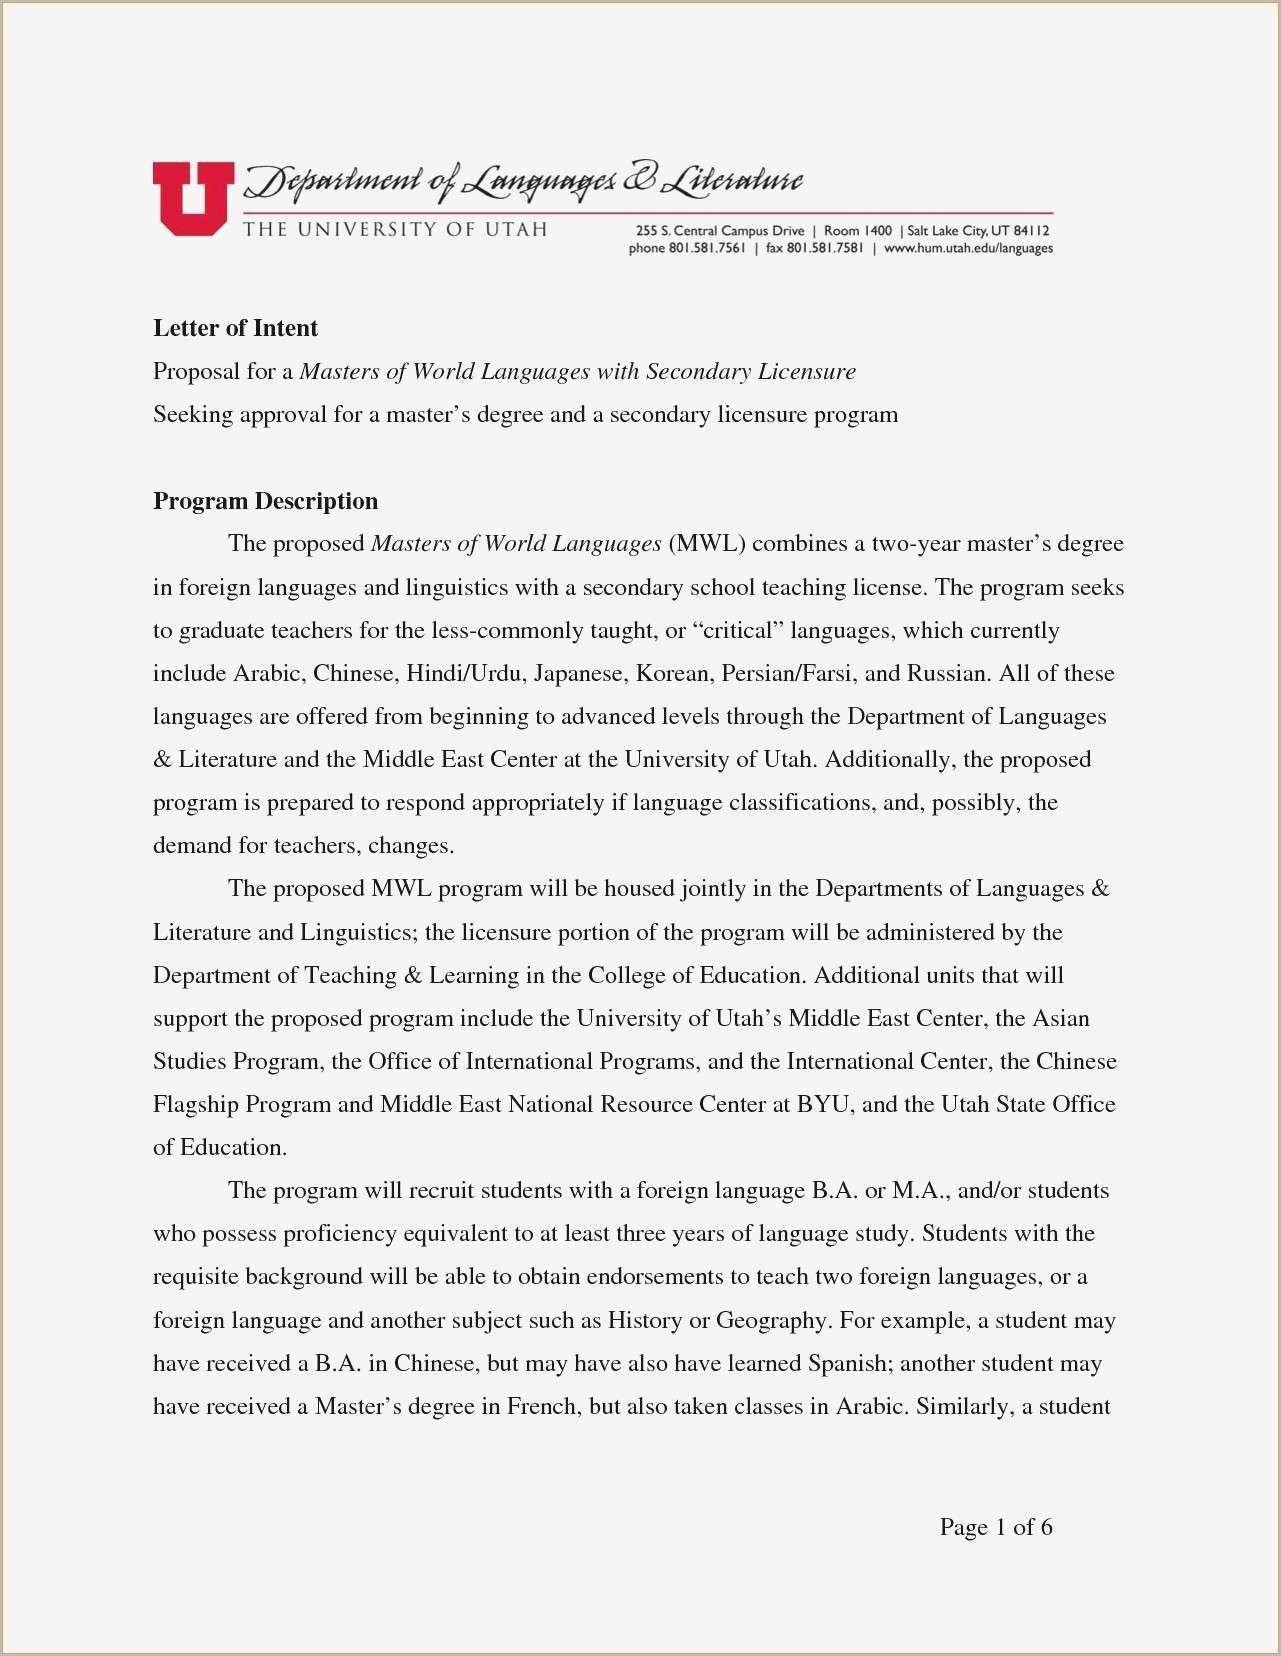 Letter of intent template graduate school examples letter templates letter of intent template graduate school 21 get graduate school letter intent template zgofkxs expocarfo Choice Image